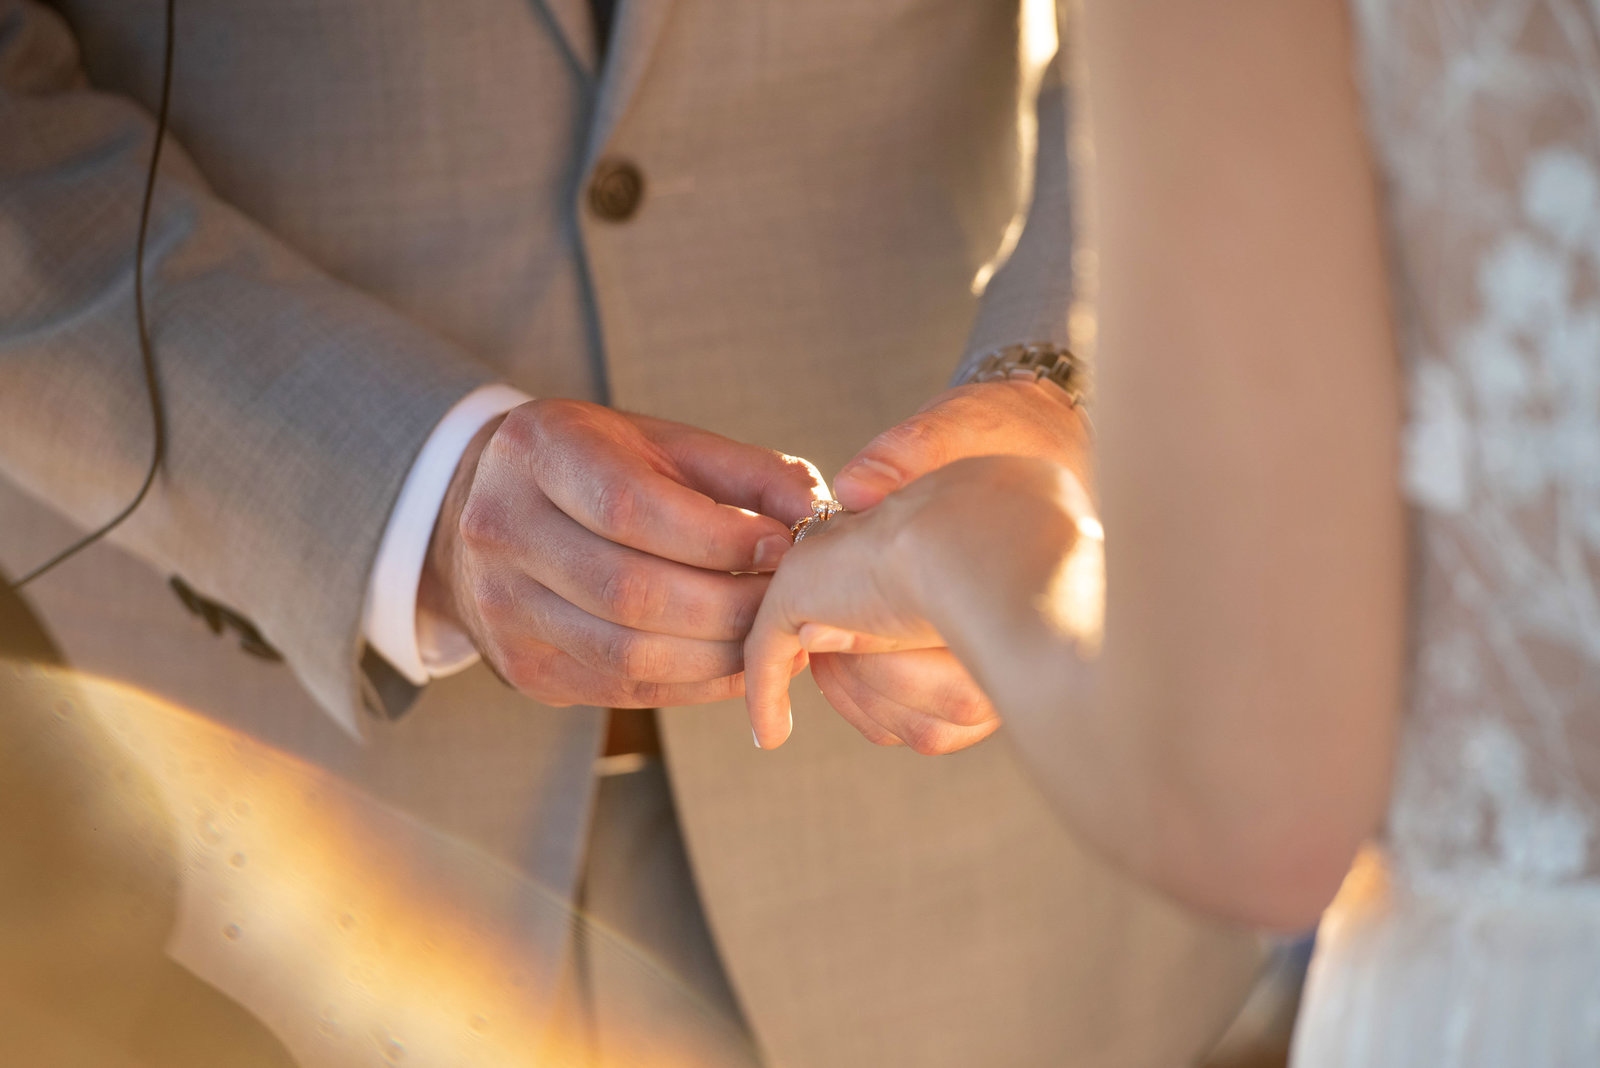 Groom putting ring on bride's finger at Atlantis Banquet and Events